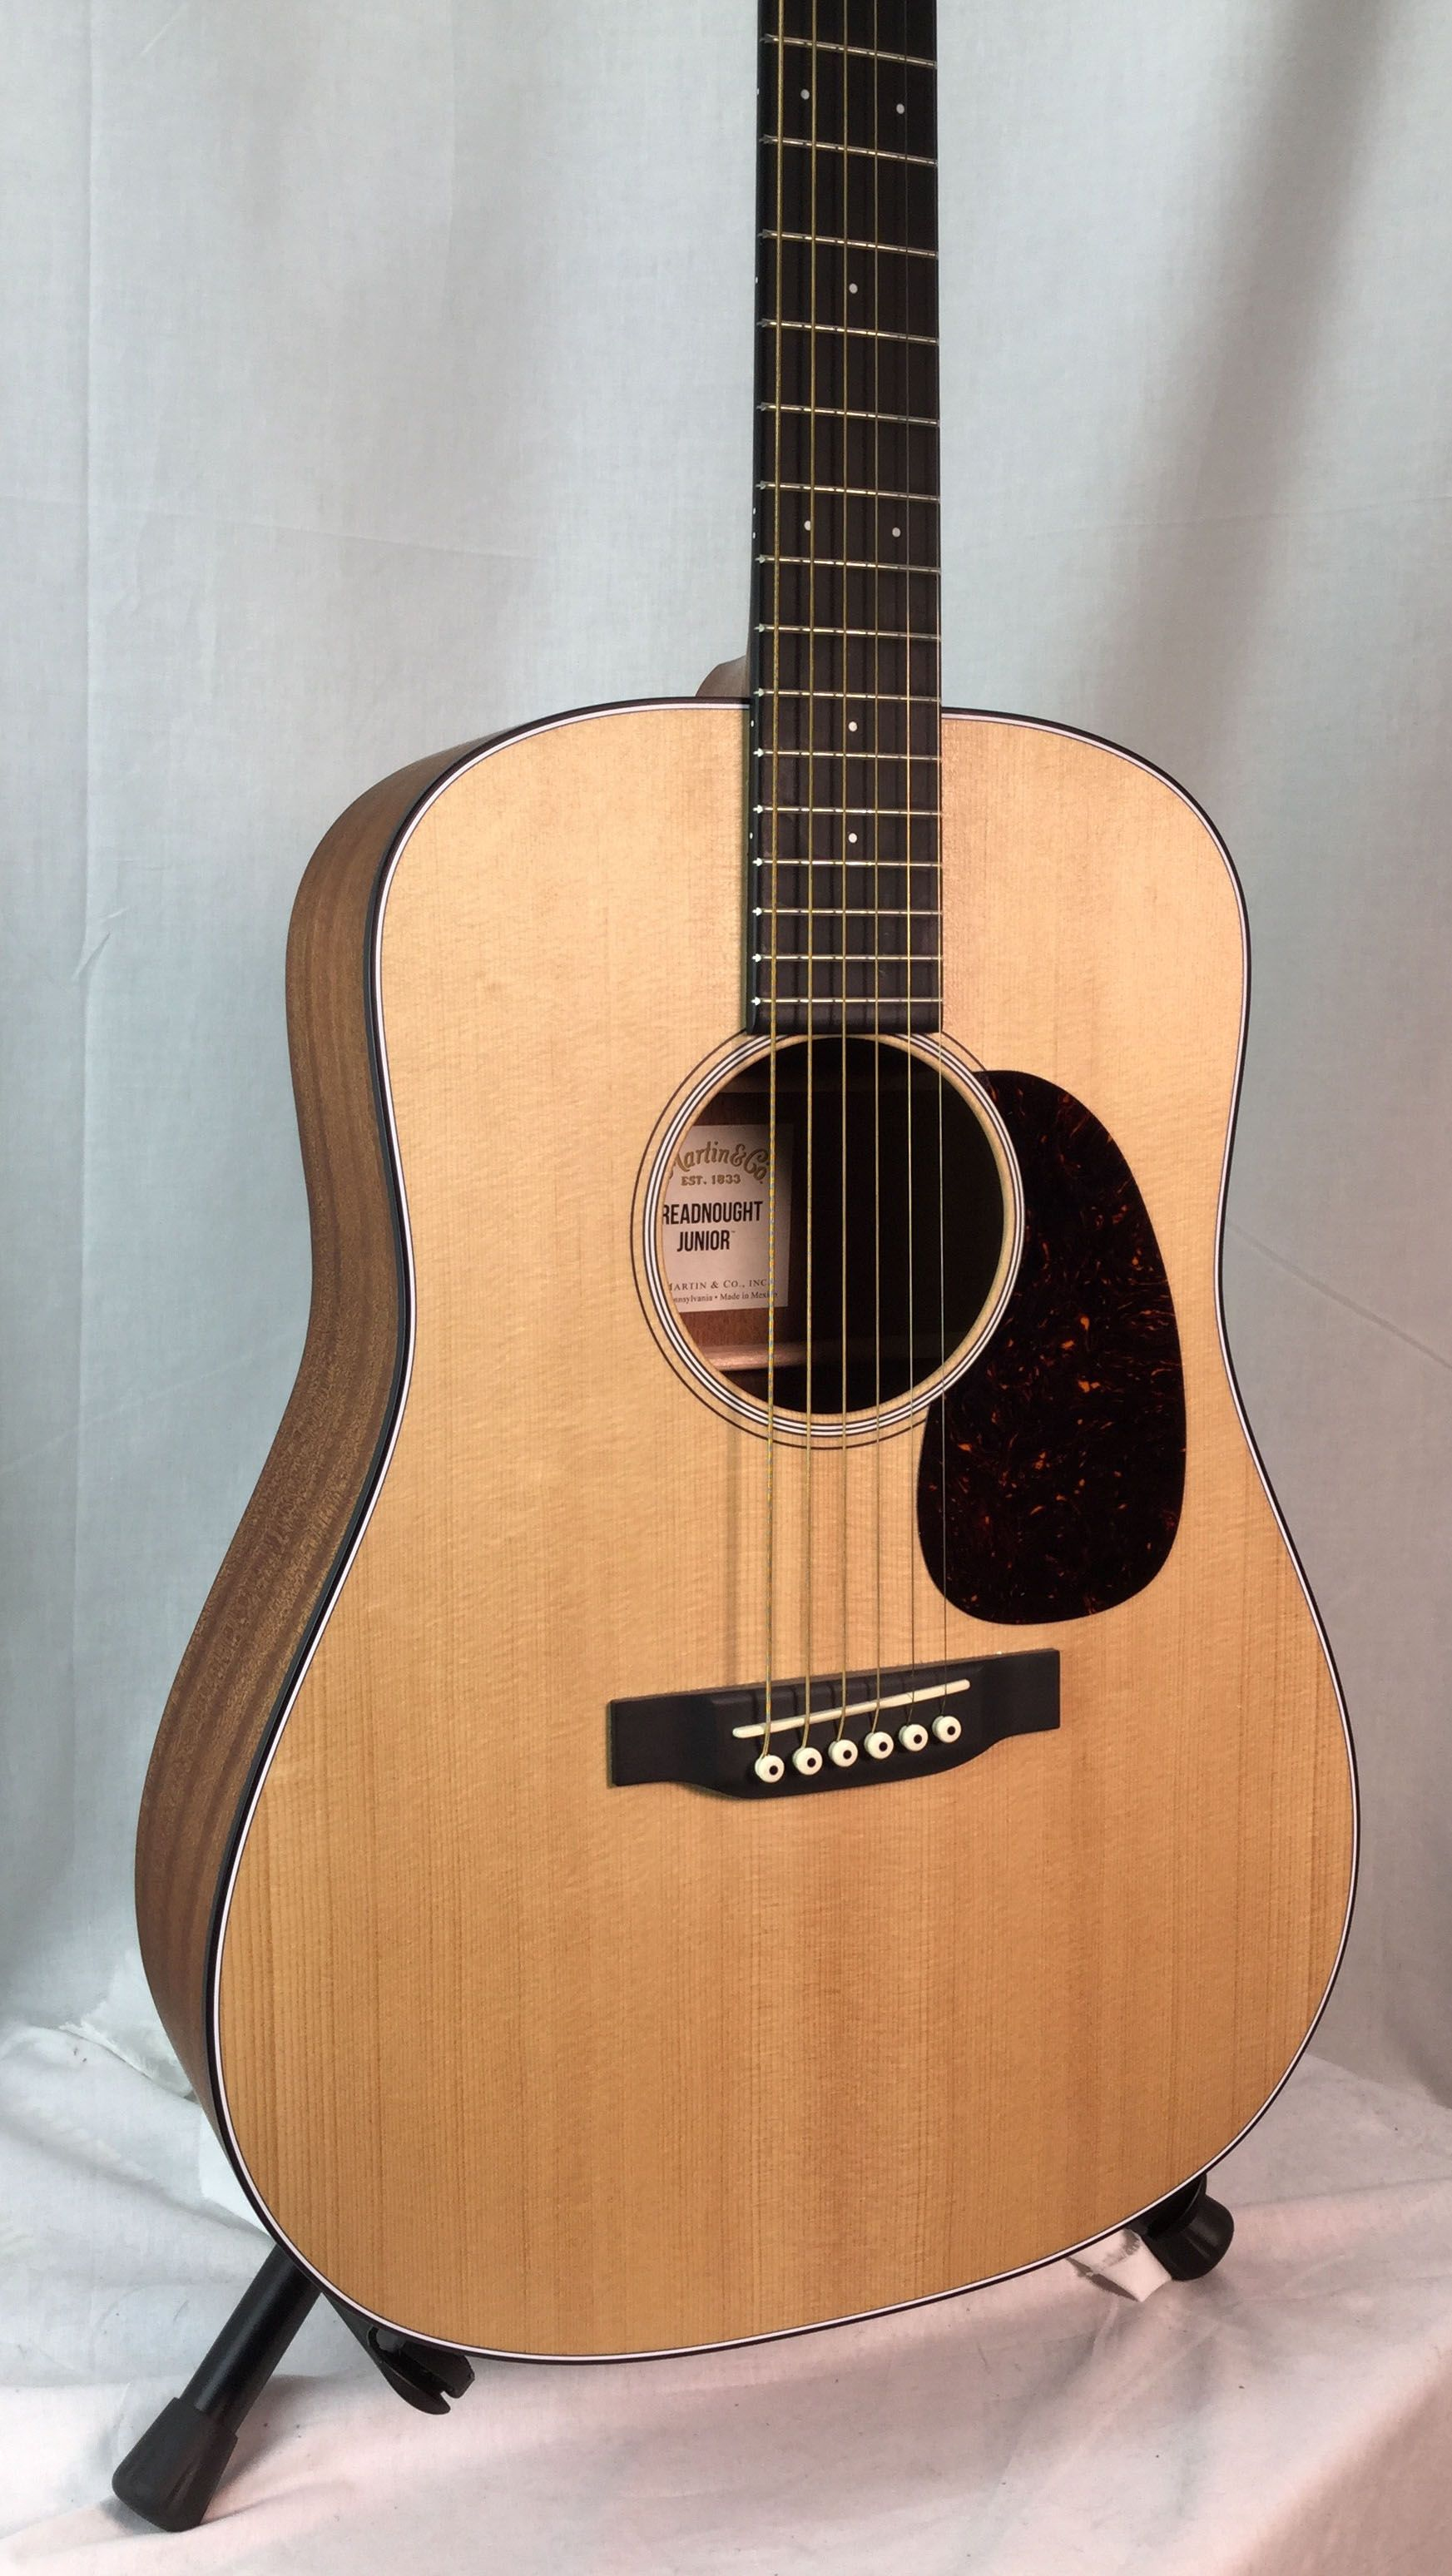 Martin Dreadnought Junior Djr Westwood Music Tradition Since 1947 Acoustic Guitar For Sale Guitar Guitar For Beginners